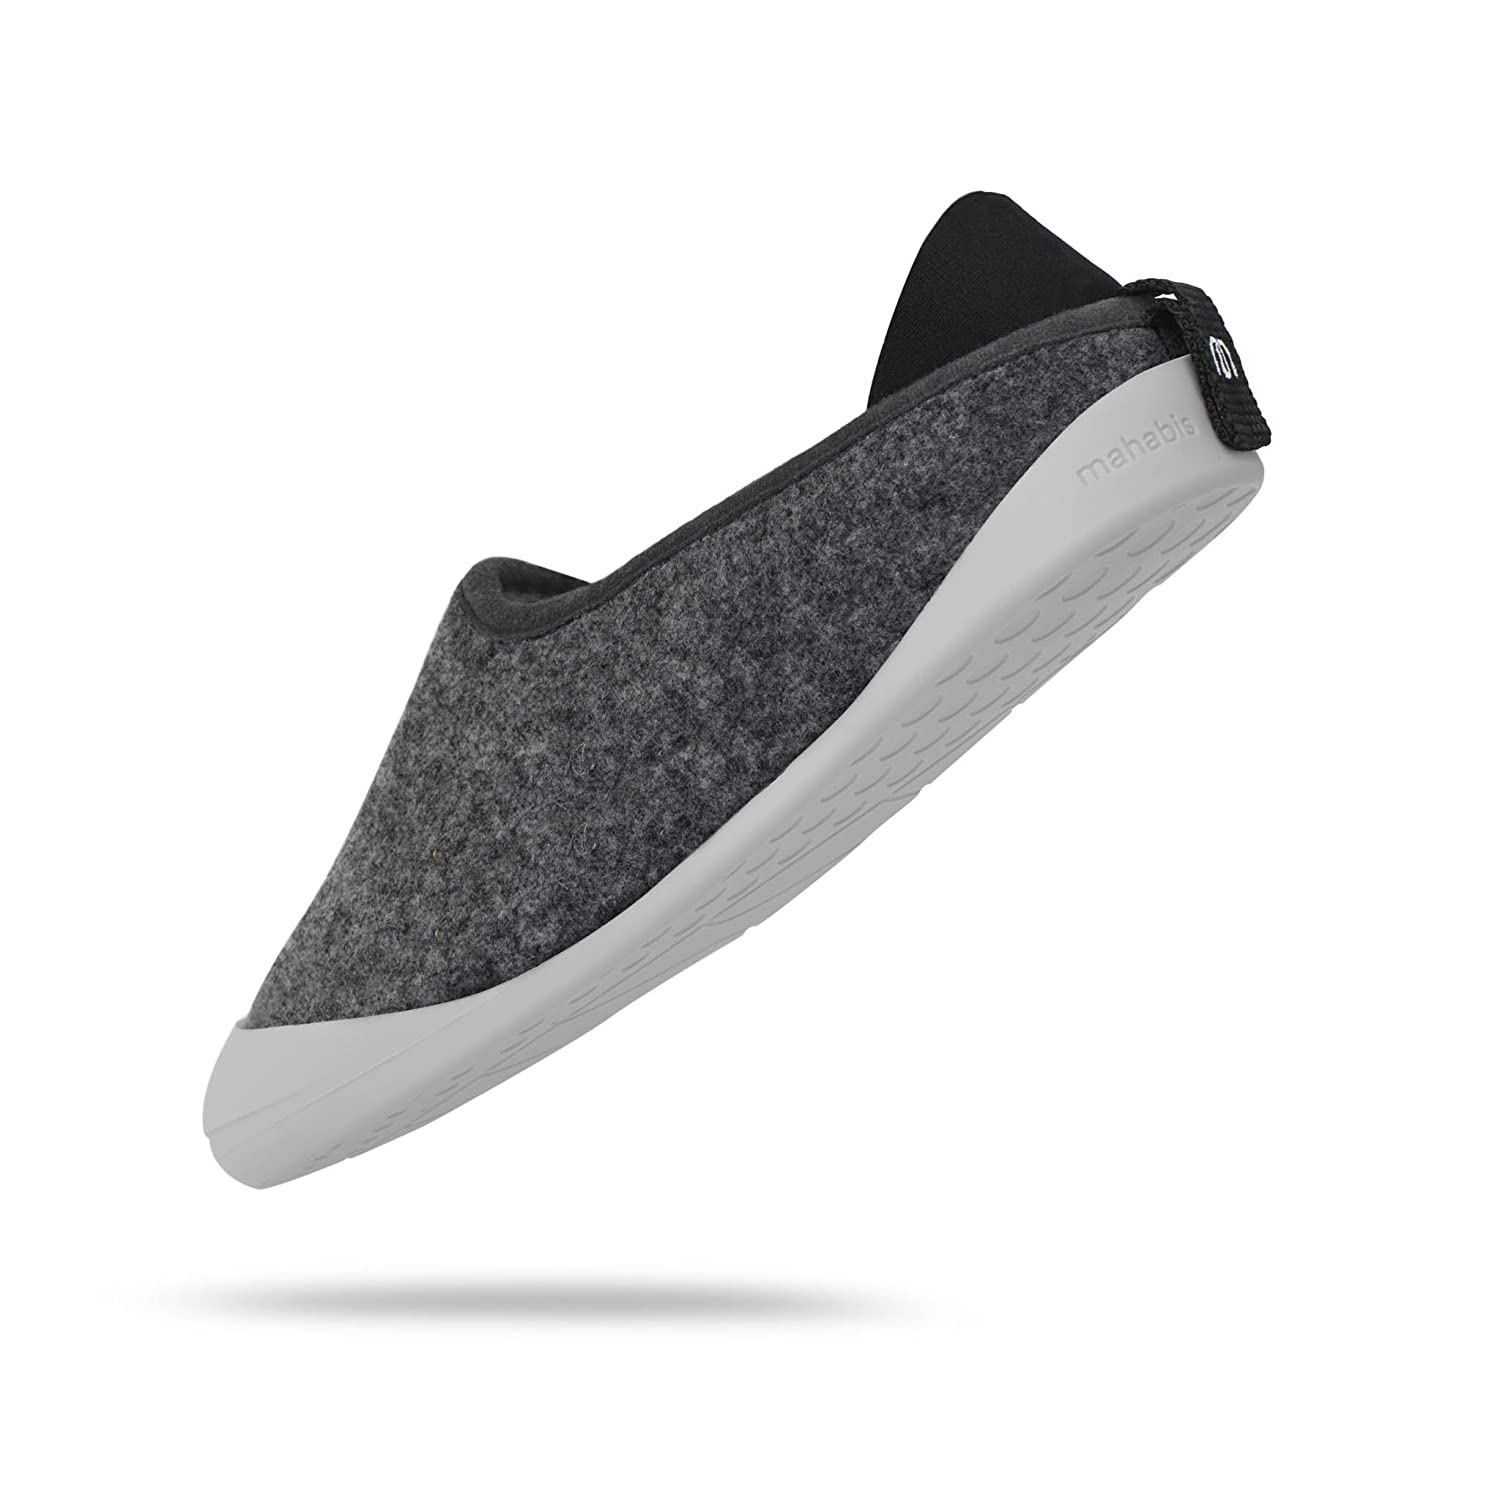 mahabis Larvik Dark Grey Summer Zapatillas con Suela Larvik Light Grey EN Talla 43 EU